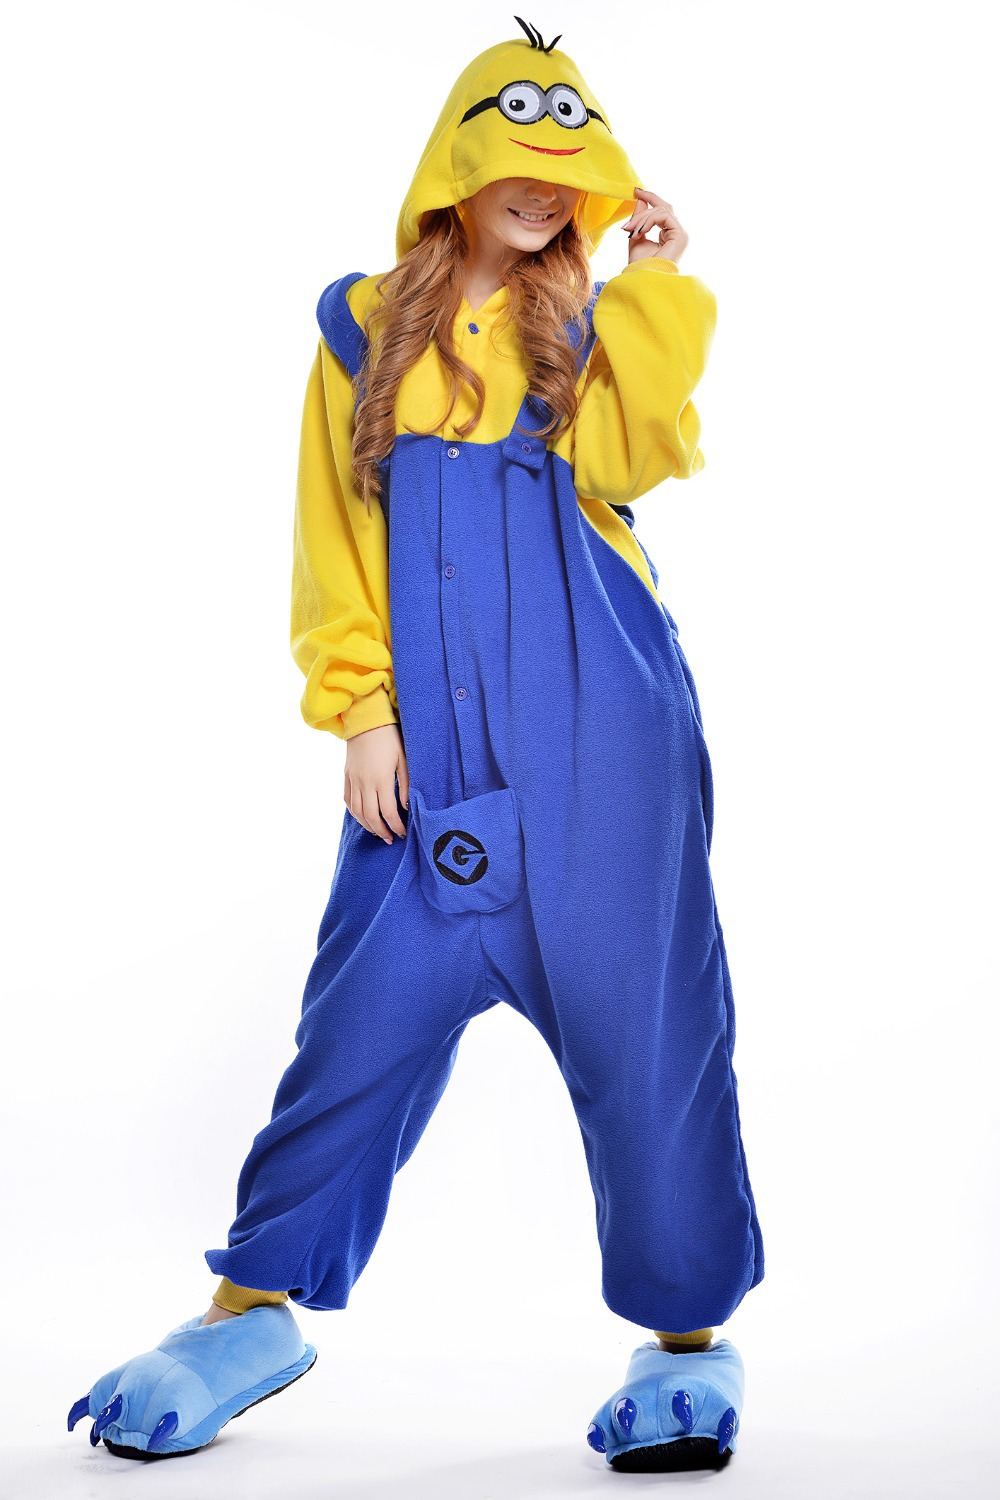 024411e8837199 US $33.99 |Minion Costume/ Plus Size Halloween Costume for Women/ Adult  Animal Footed Pajamas/ Men's Onesie/ Anime Cosplay/ Fancy Sleepwear-in  Mascot ...